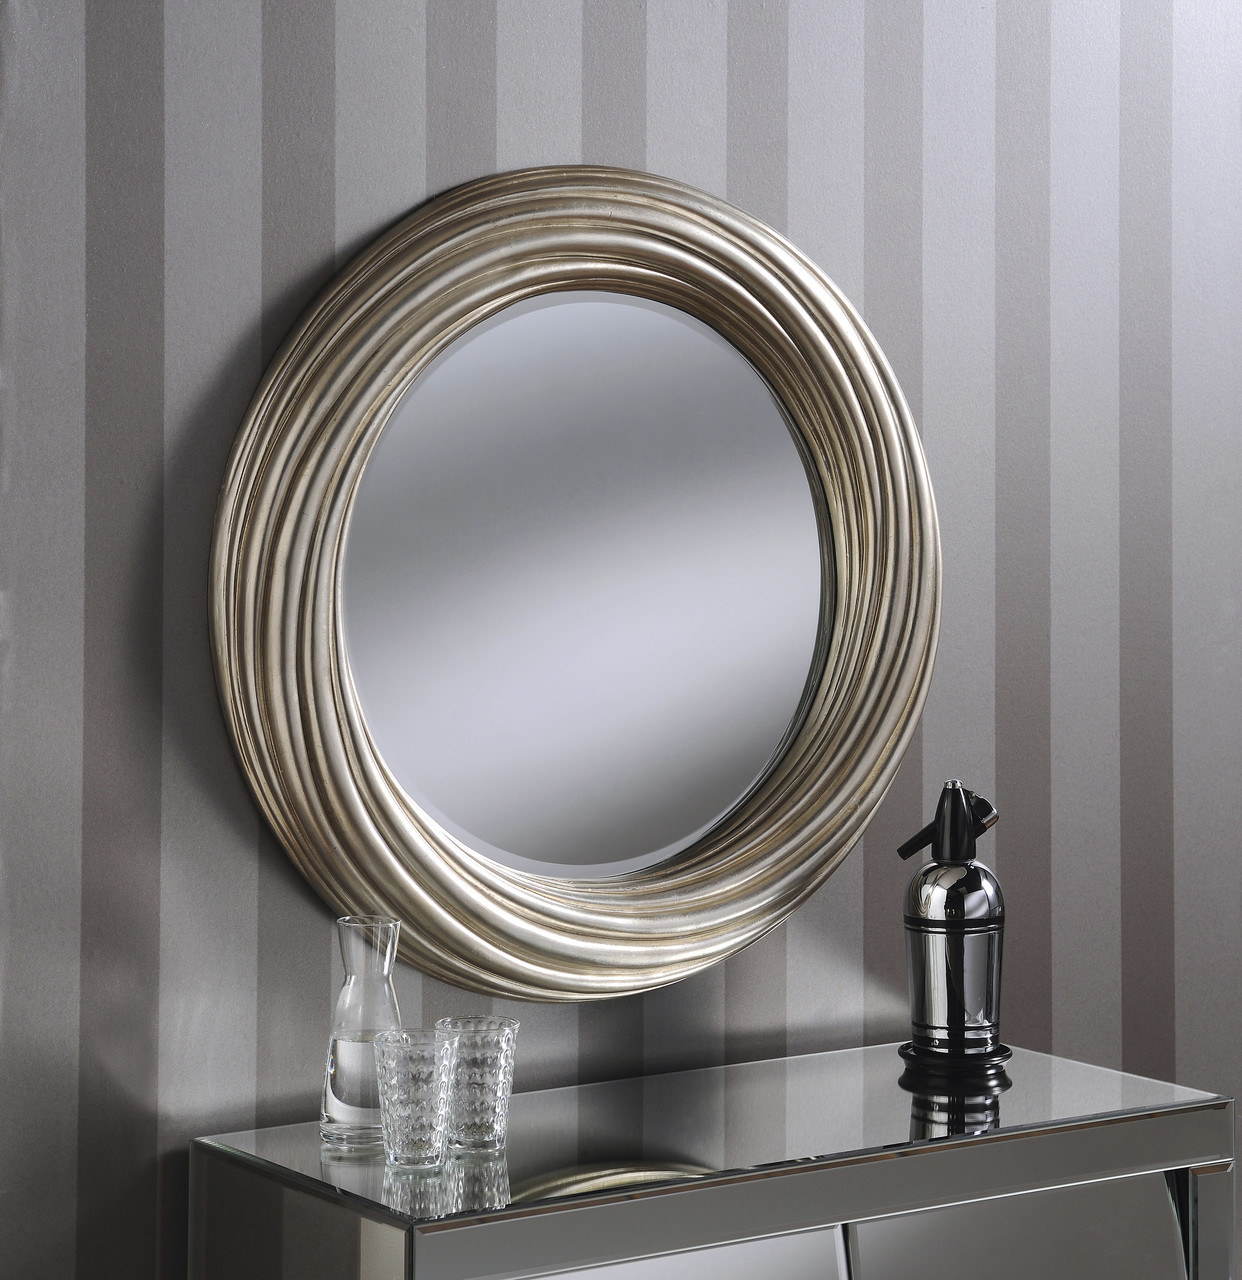 Adele Large Round Modern Wall Mirror Silver Frame Art Deco Antique 32 82cm Mirrors 2 Home